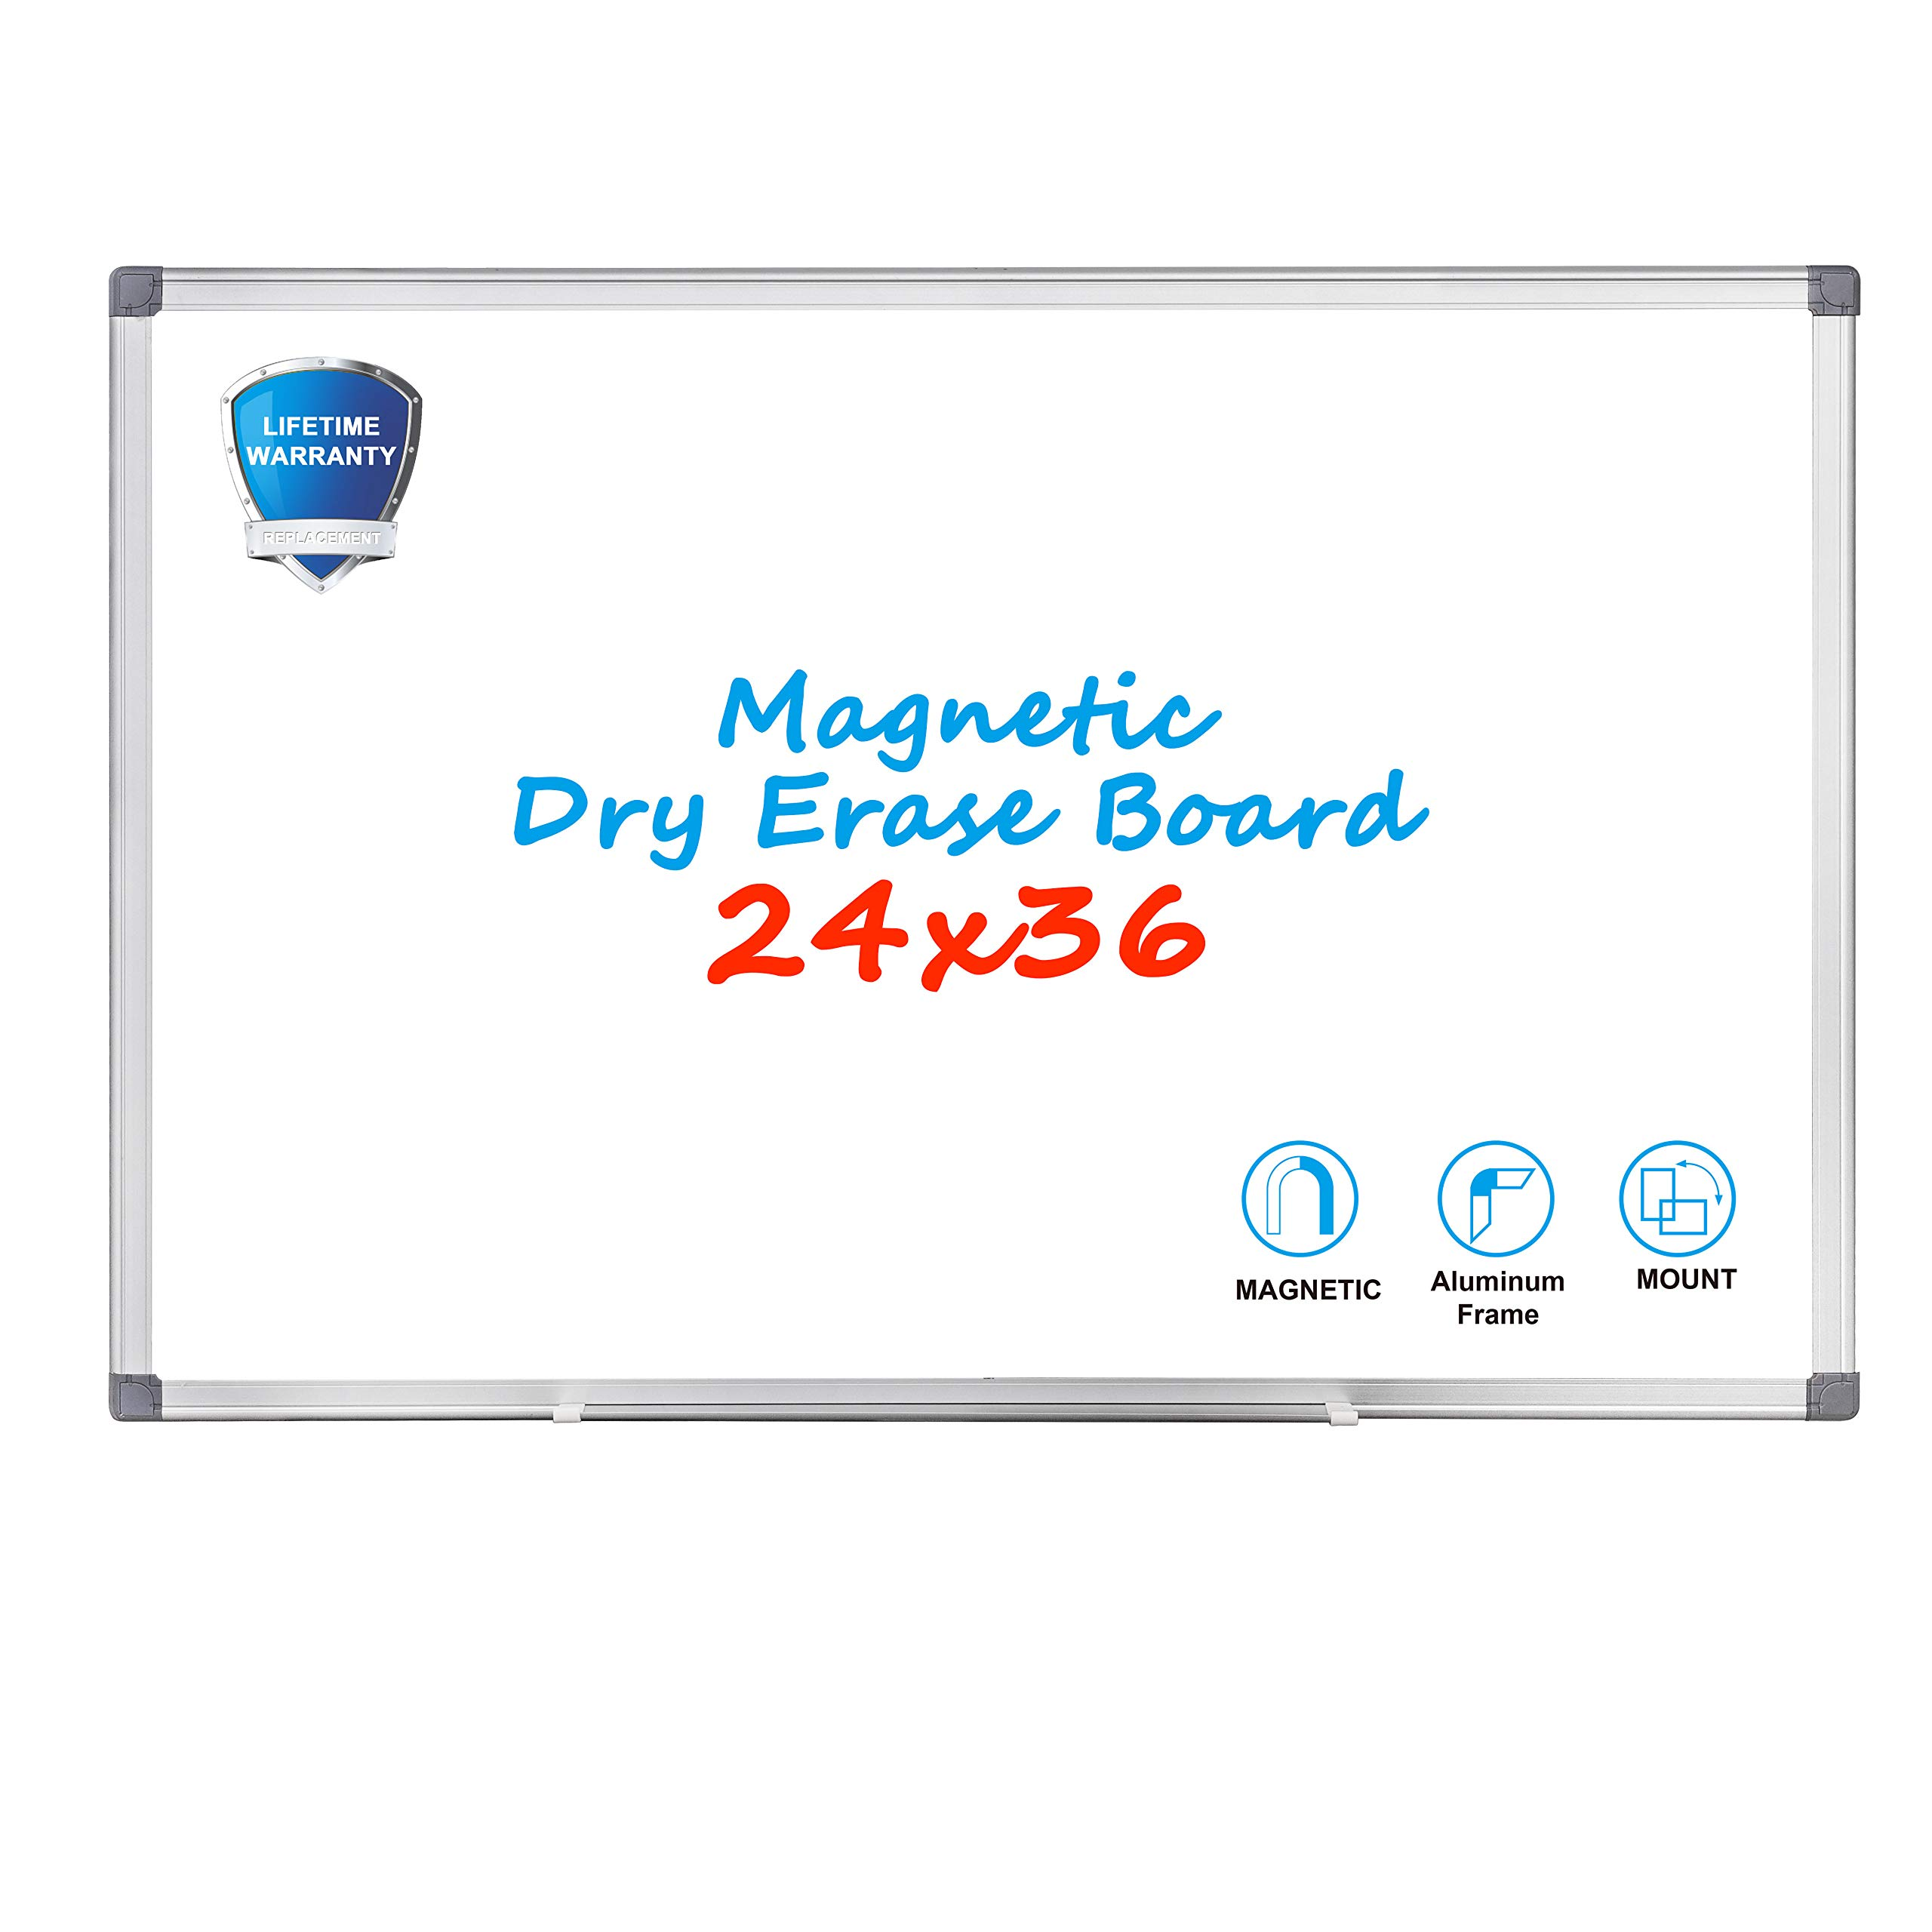 Magnetic Dry Erase Board - WEYOUNG 36 x 24 Inch Wall Hanging White Board with Aluminum Frame for School, Home, Office by WEYOUNG